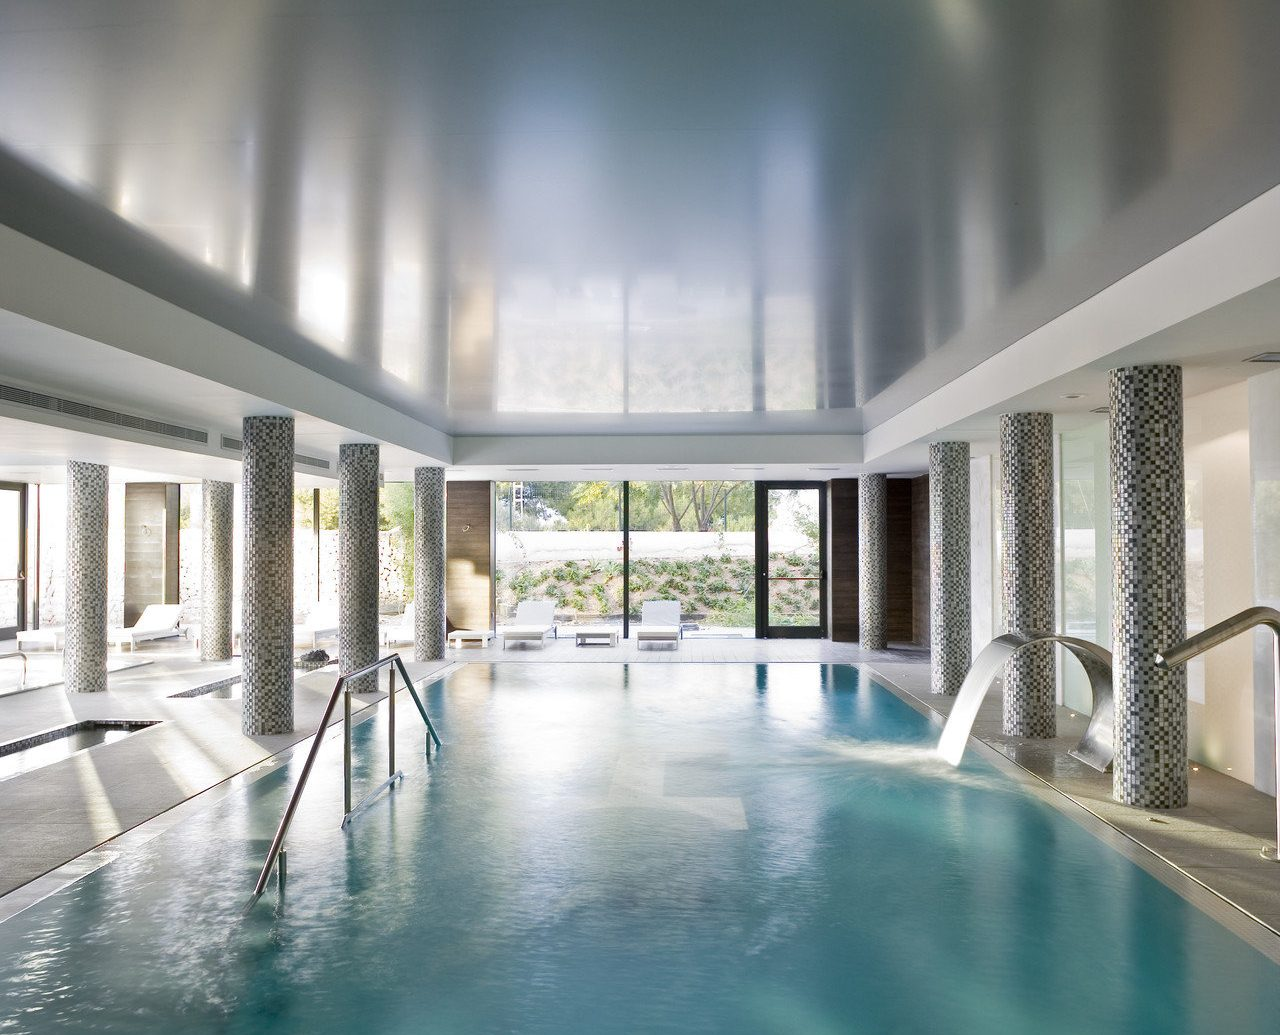 clean Greenery Health + Wellness Hotels indoor pool lounge chairs open-air Pool relaxation Spa Spa Retreats view white swimming pool indoor reflection light Architecture reflecting pool estate lighting headquarters